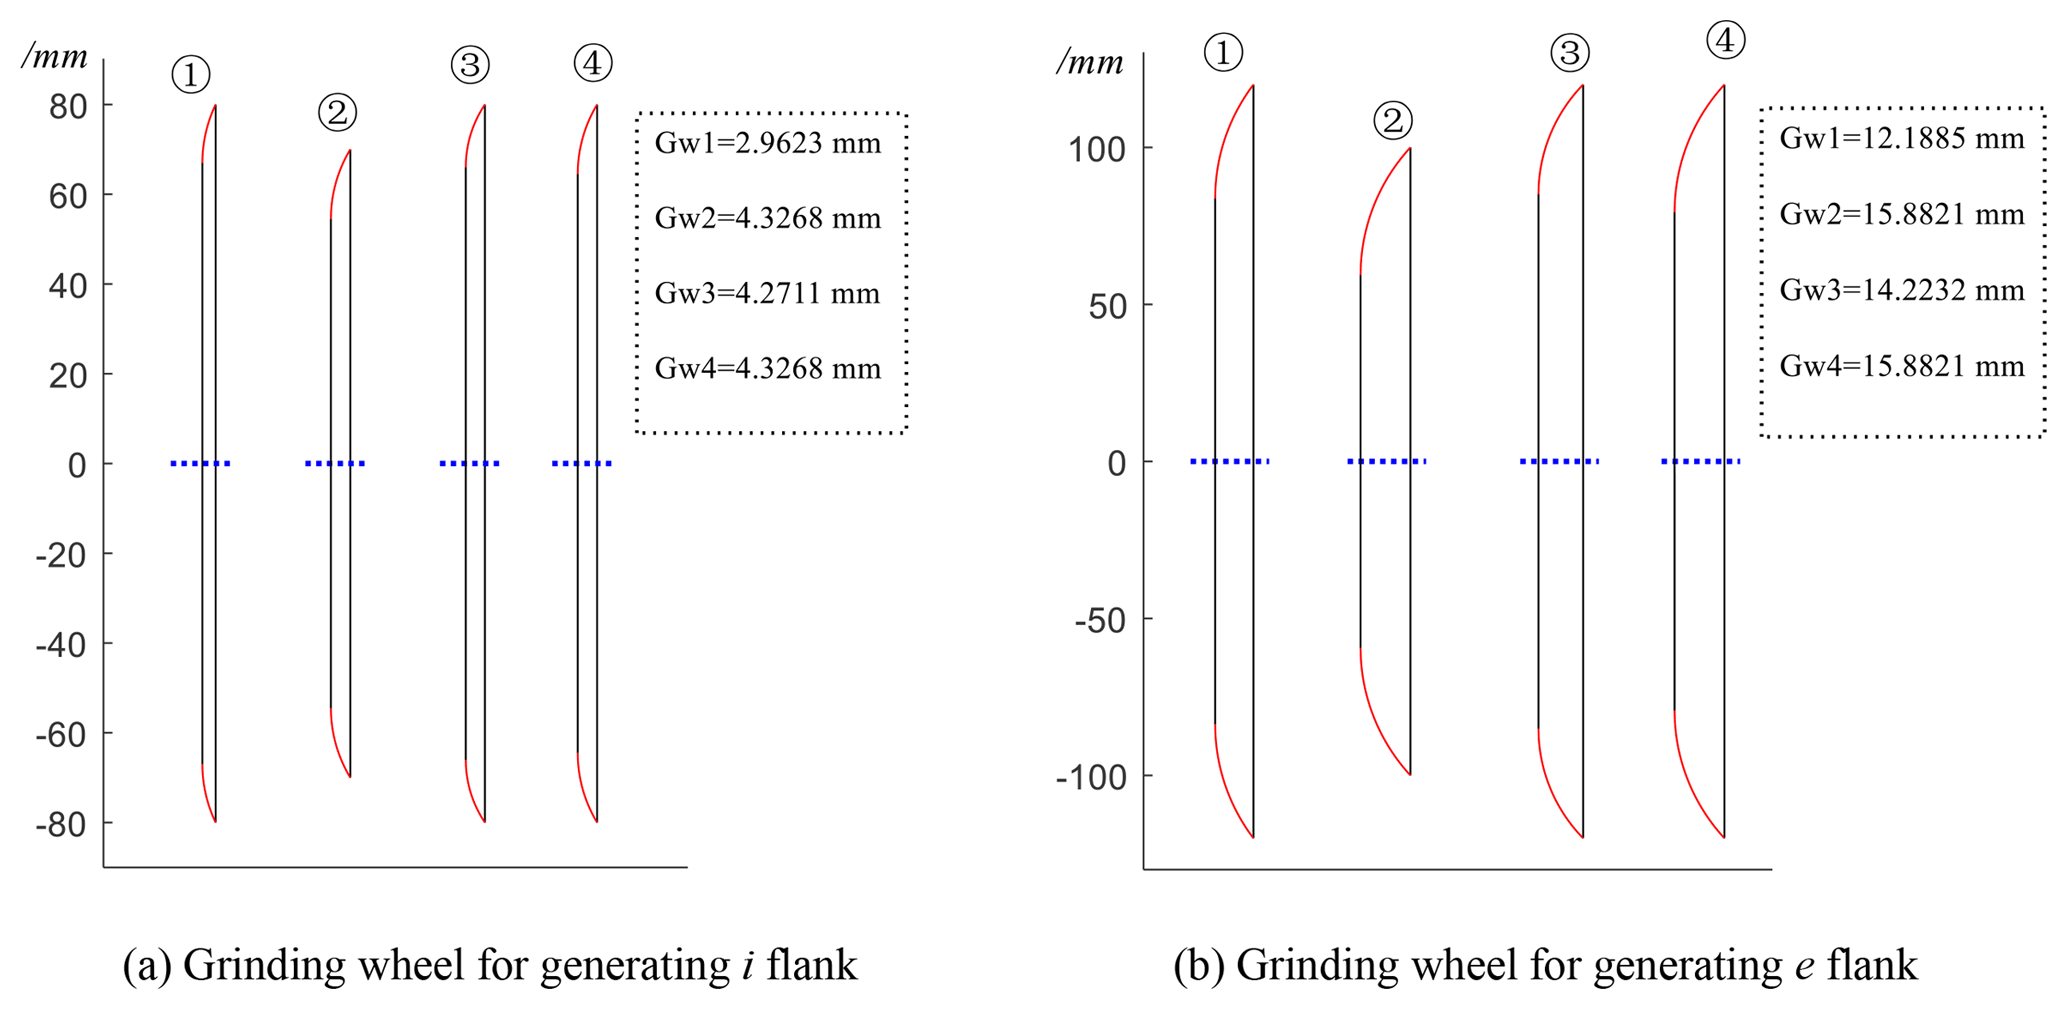 MS - Influence of grinding wheel parameters on the meshing